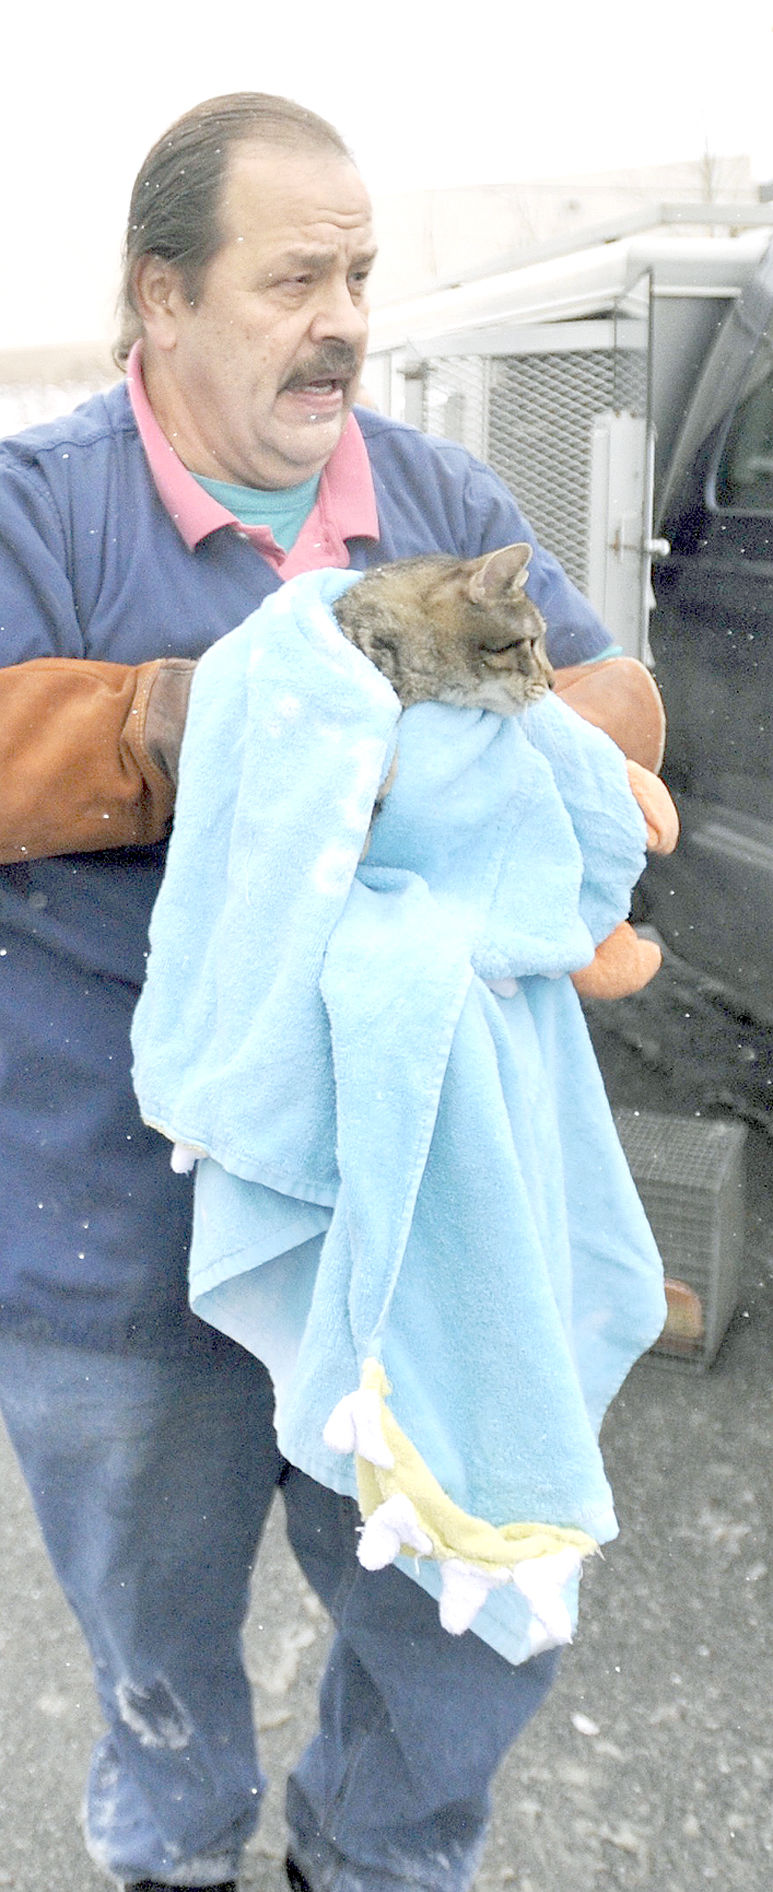 37 cats rescued from home in Johnstown